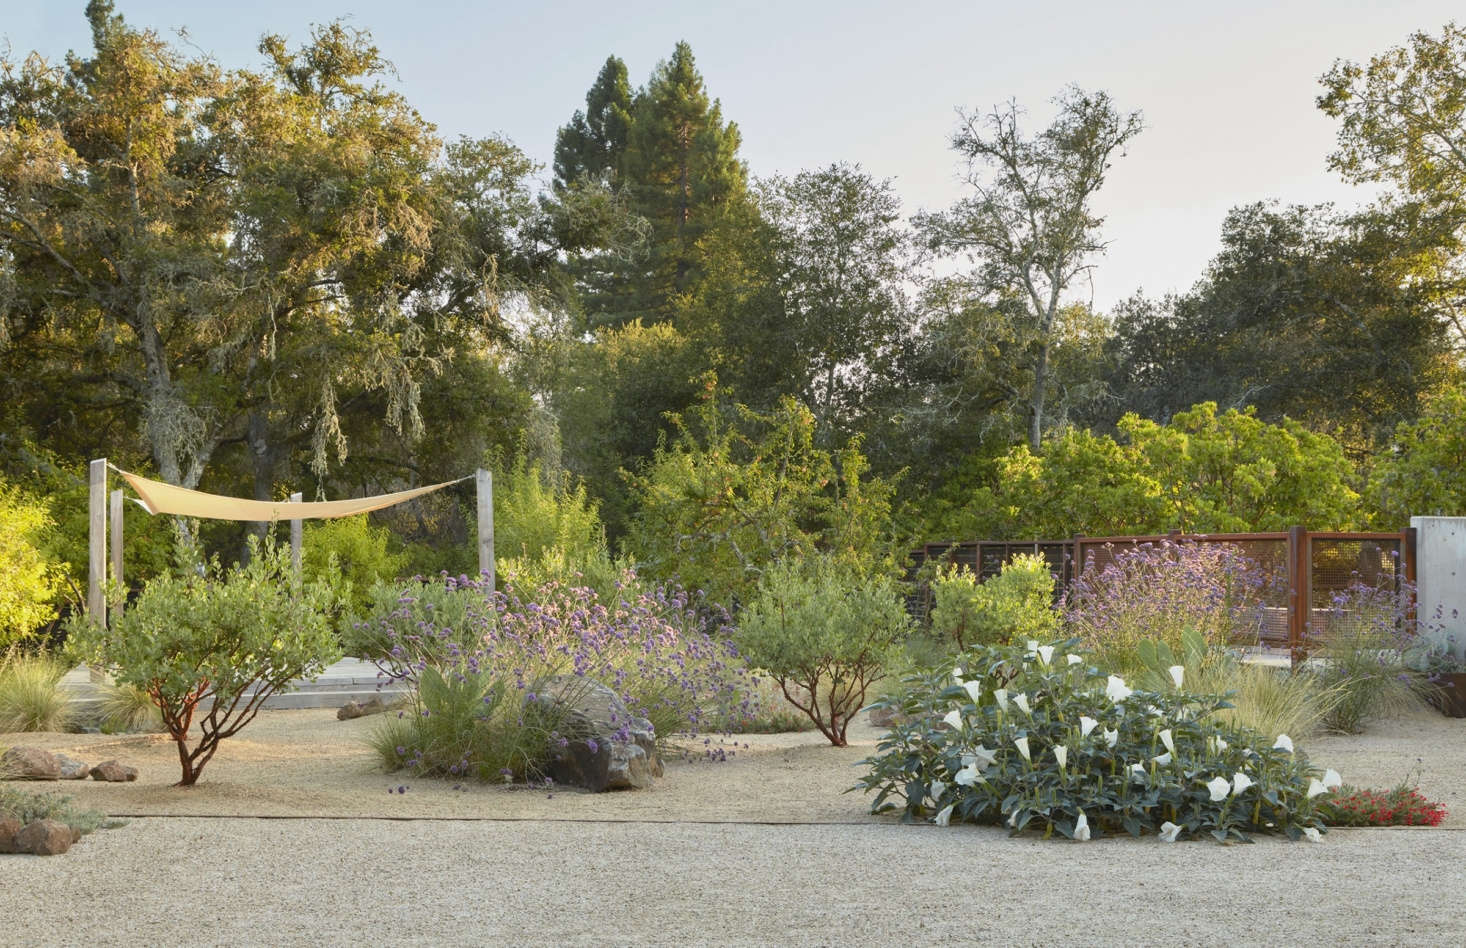 """The garden was built on Southern Pomo ancestral territory. Story says the project """"pollinates the agricultural and native contexts with contemporary sensibilities and uses."""" Manuel Fernandez and his team from Green Footprint Landscaping worked with Story to bring her vision to life."""